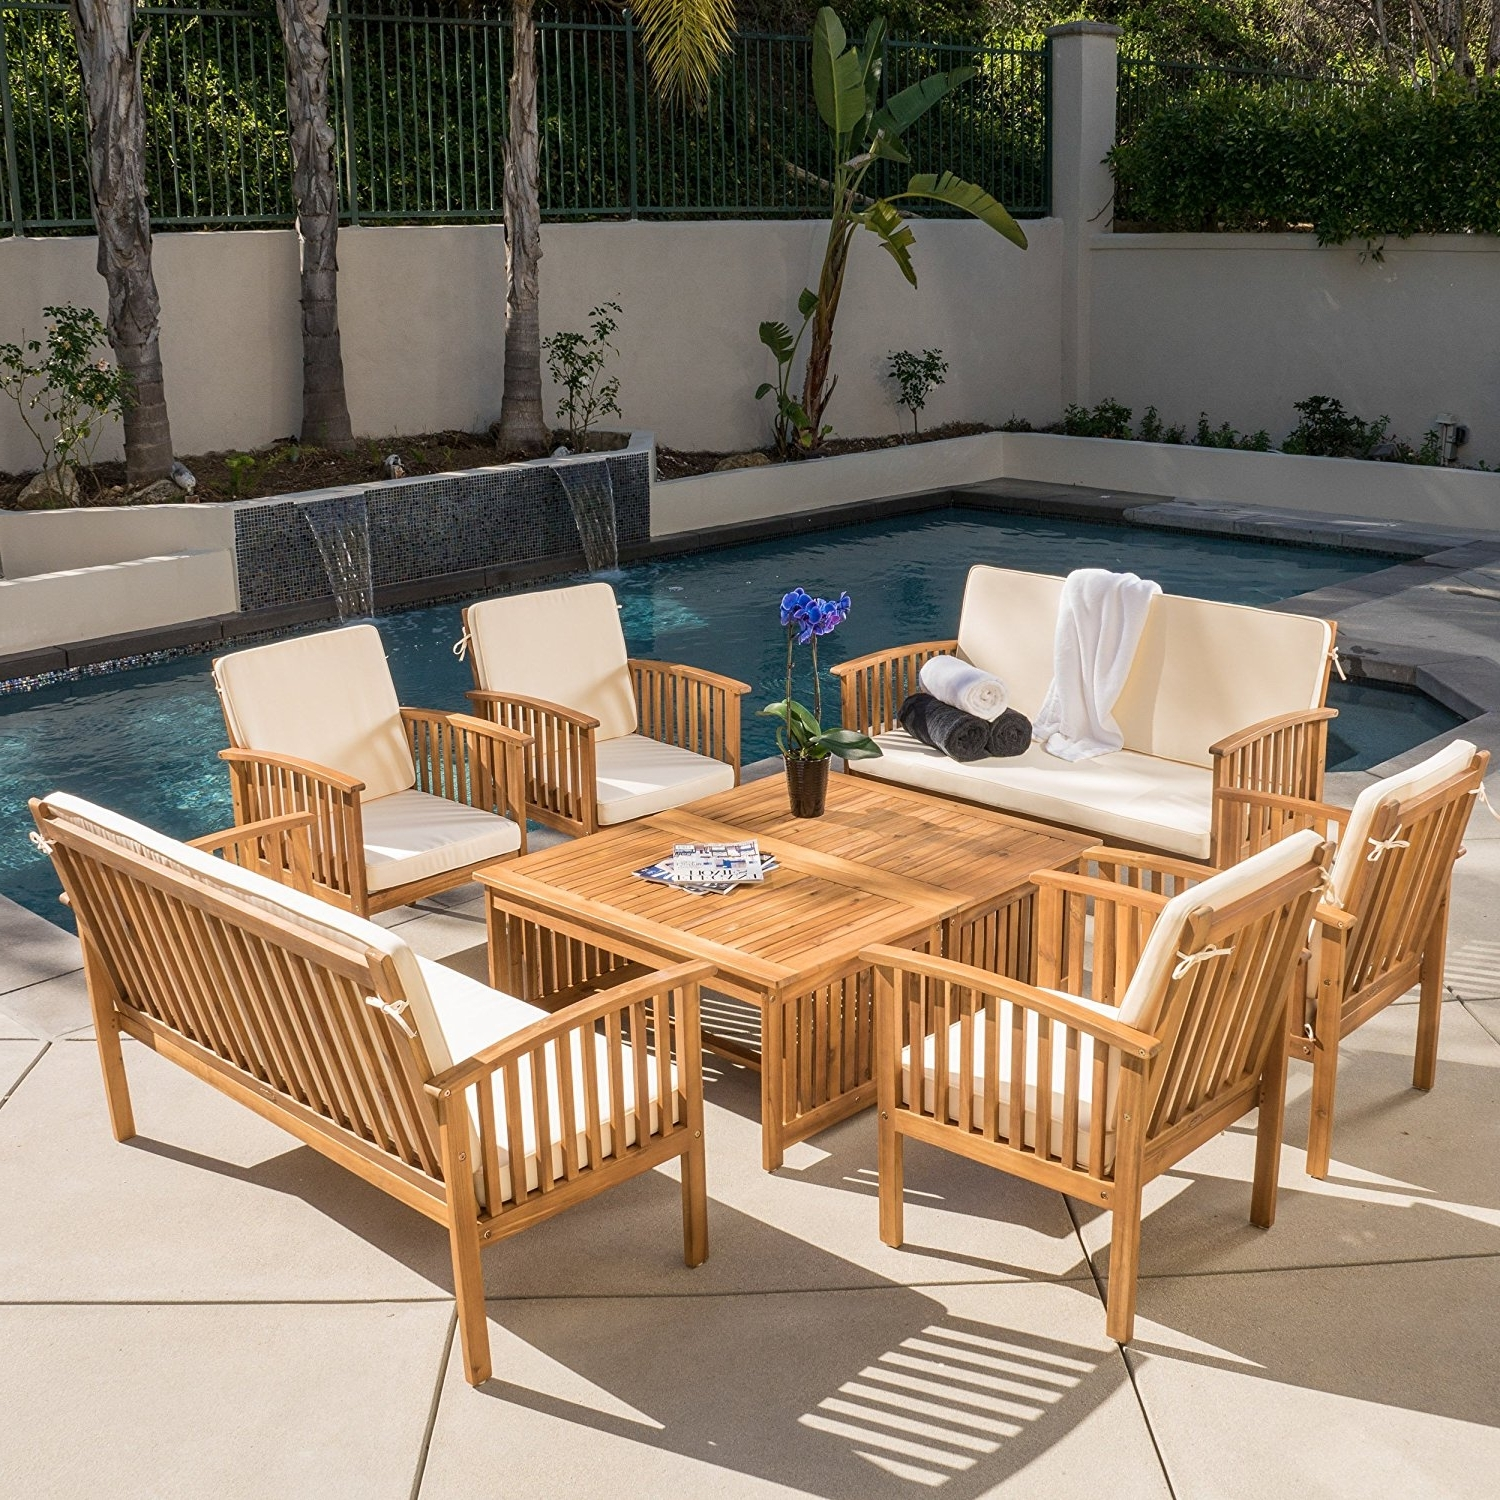 Famous Amazon Patio Furniture Conversation Sets Pertaining To Patio : Cheap Garden Furniture Popular Outdoor Furniture Near Me (View 7 of 20)